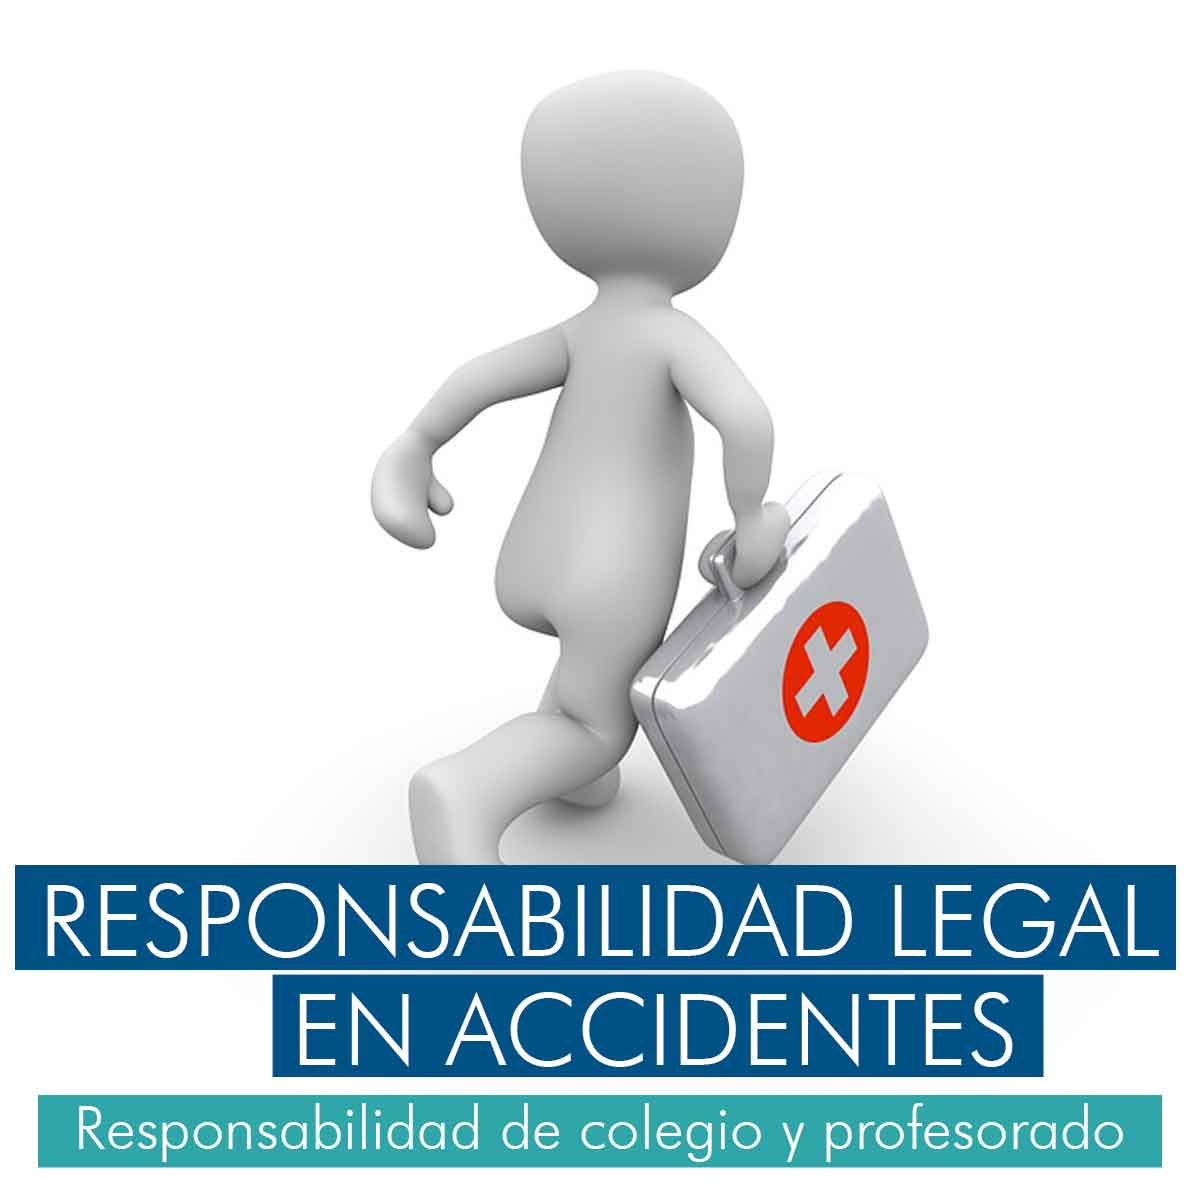 Responsabilidad legal en accidentes escolares